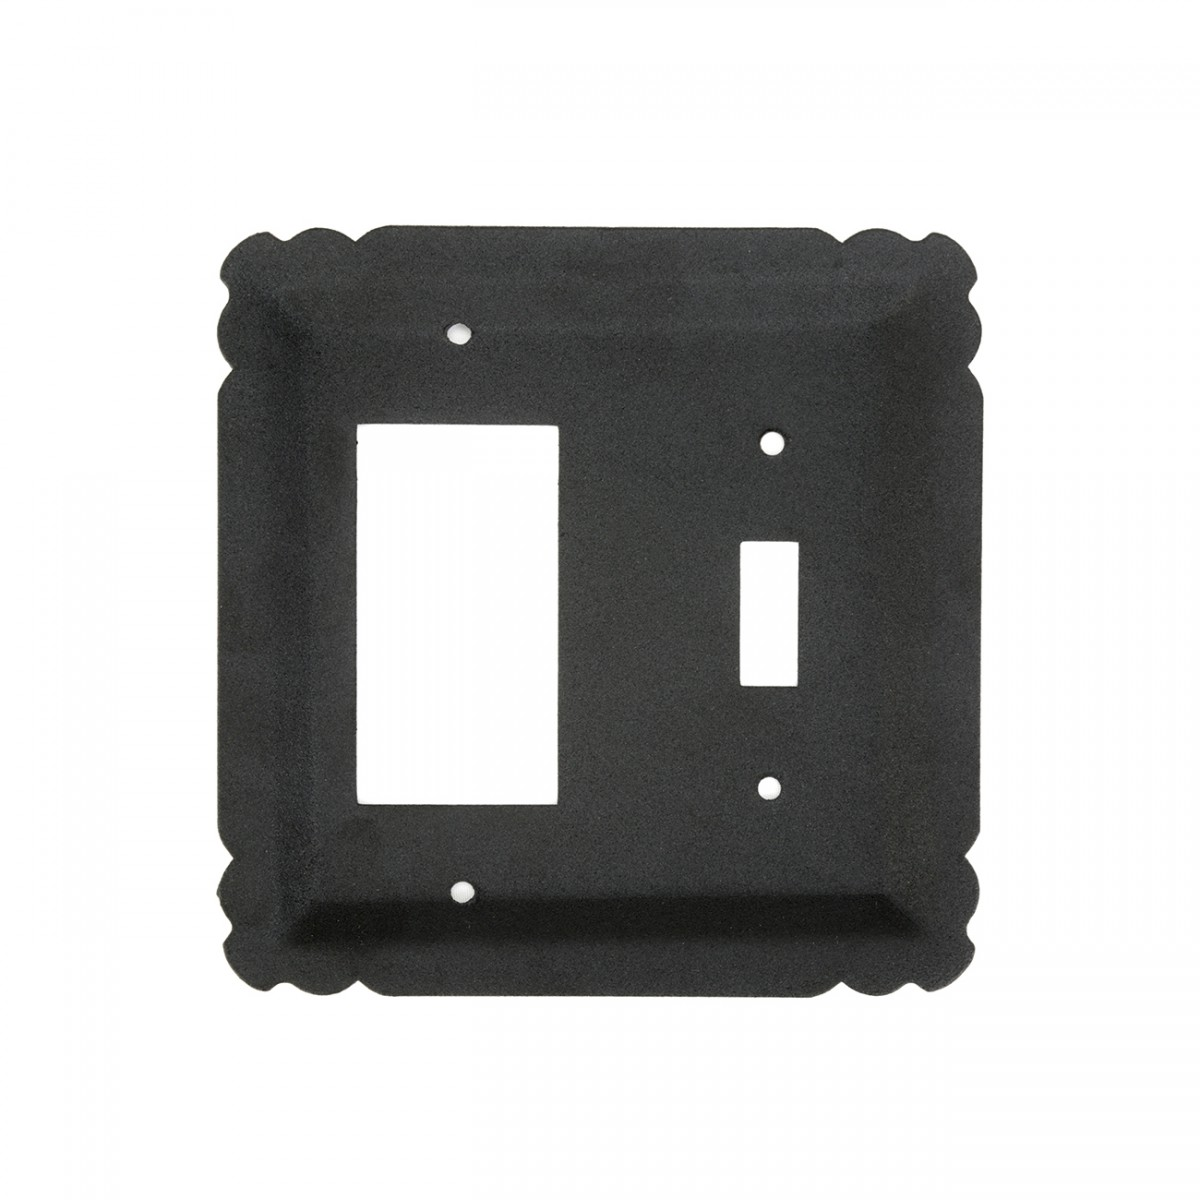 Switchplate Black Wrought Iron GFIToggle 5 14 Switchplate Covers Black Switch Plates And Outlet Covers Decorative Switchplates